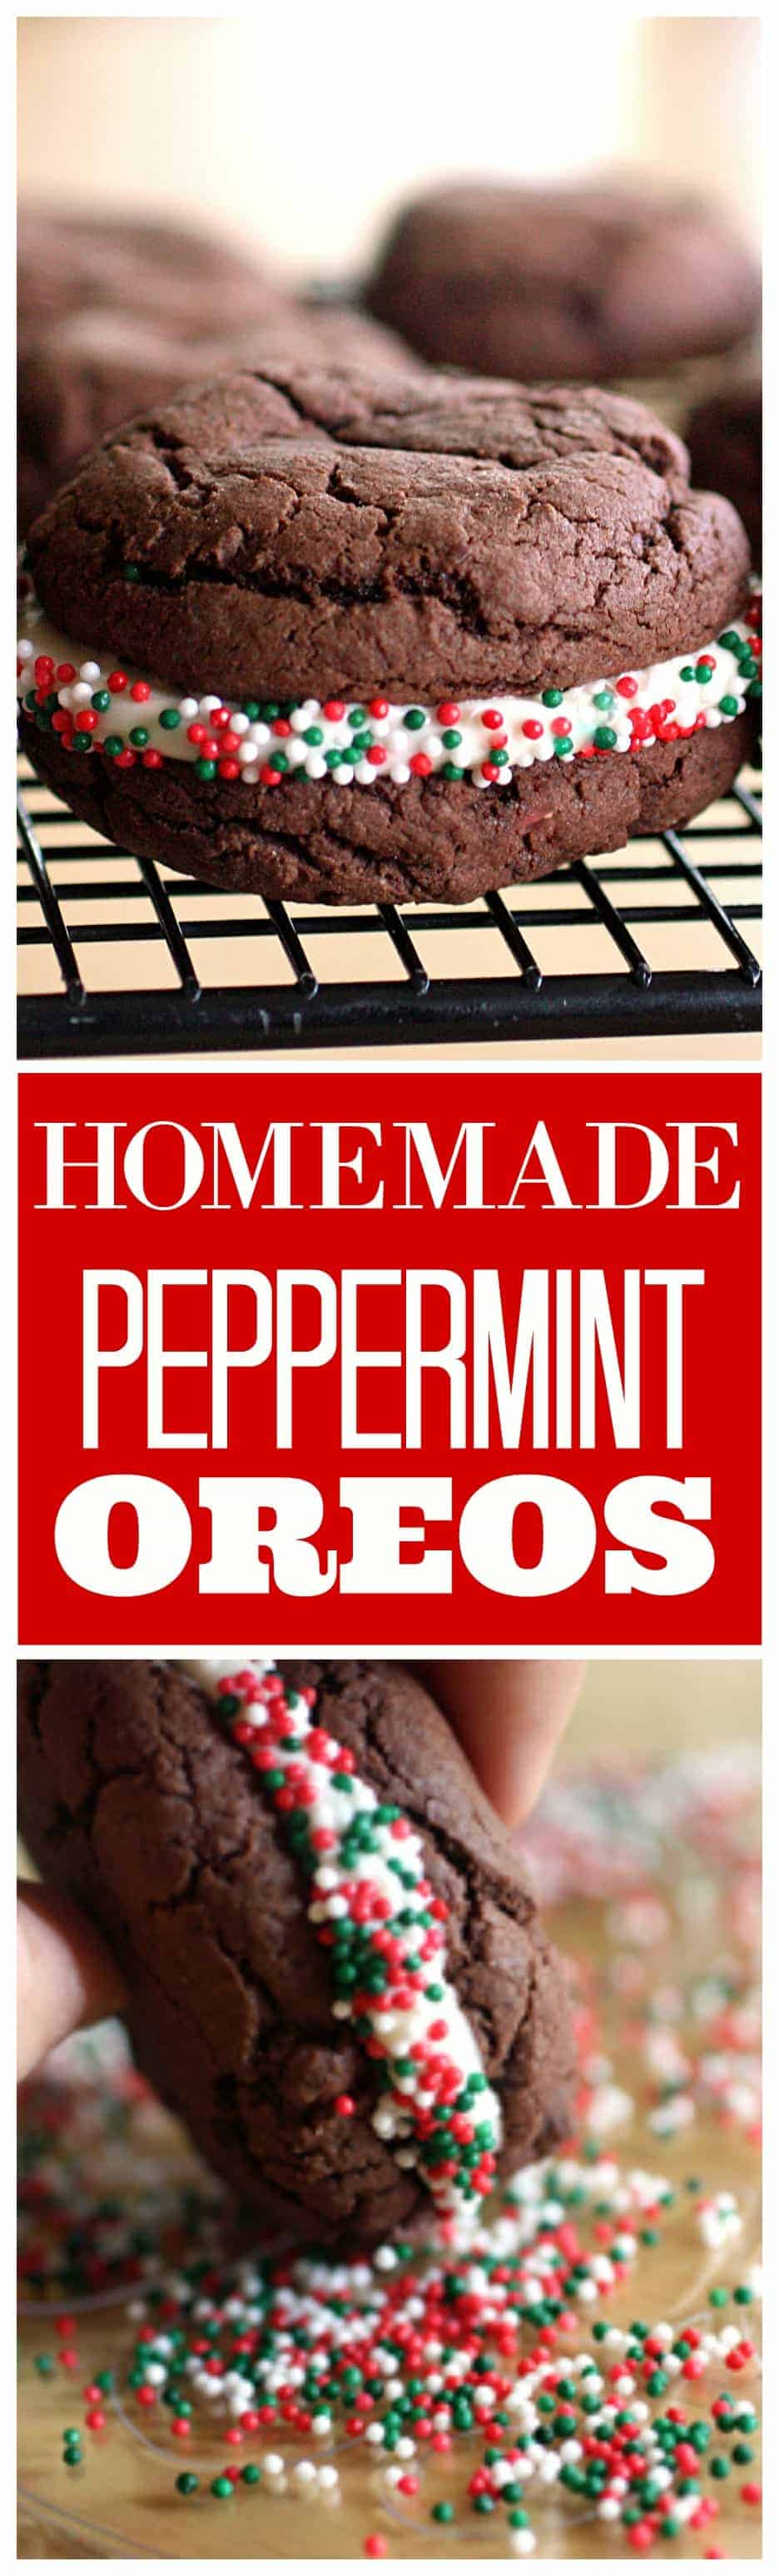 Homemade Peppermint Oreos - soft chocolate cookies with a peppermint cream cheese frosting. Great for Christmas cookie plates. #christmas #homemade #peppermint #oreos #cookies #recipe